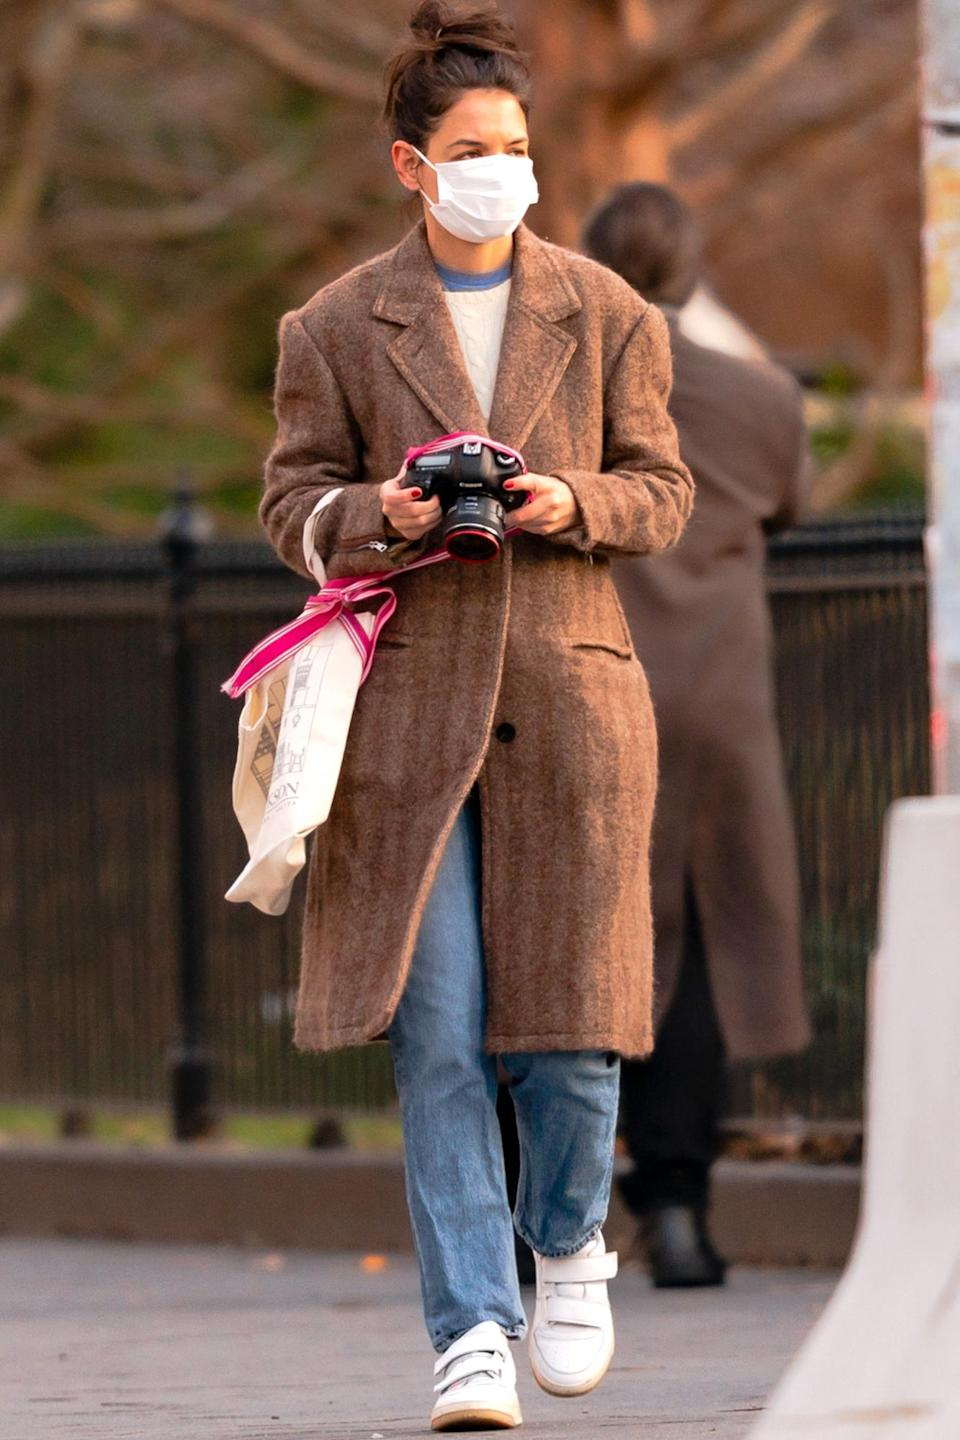 <p>Katie Holmes was spotted with a camera in hand during an outing in Washington Square Park in New York City.</p>